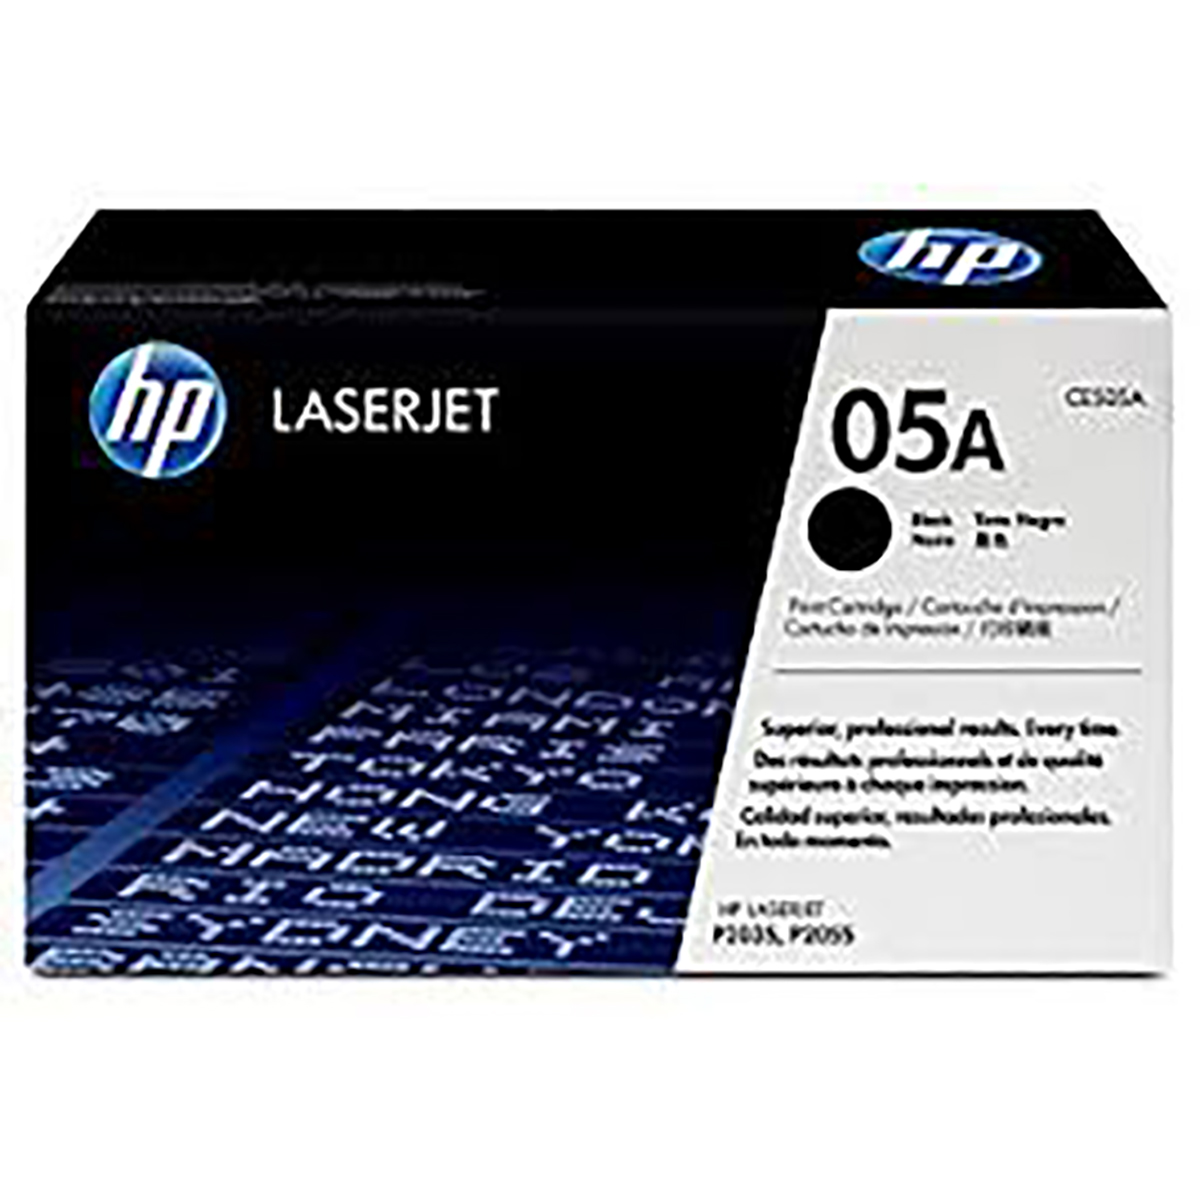 HP CE505A Black LaserJet Toner Cartridge